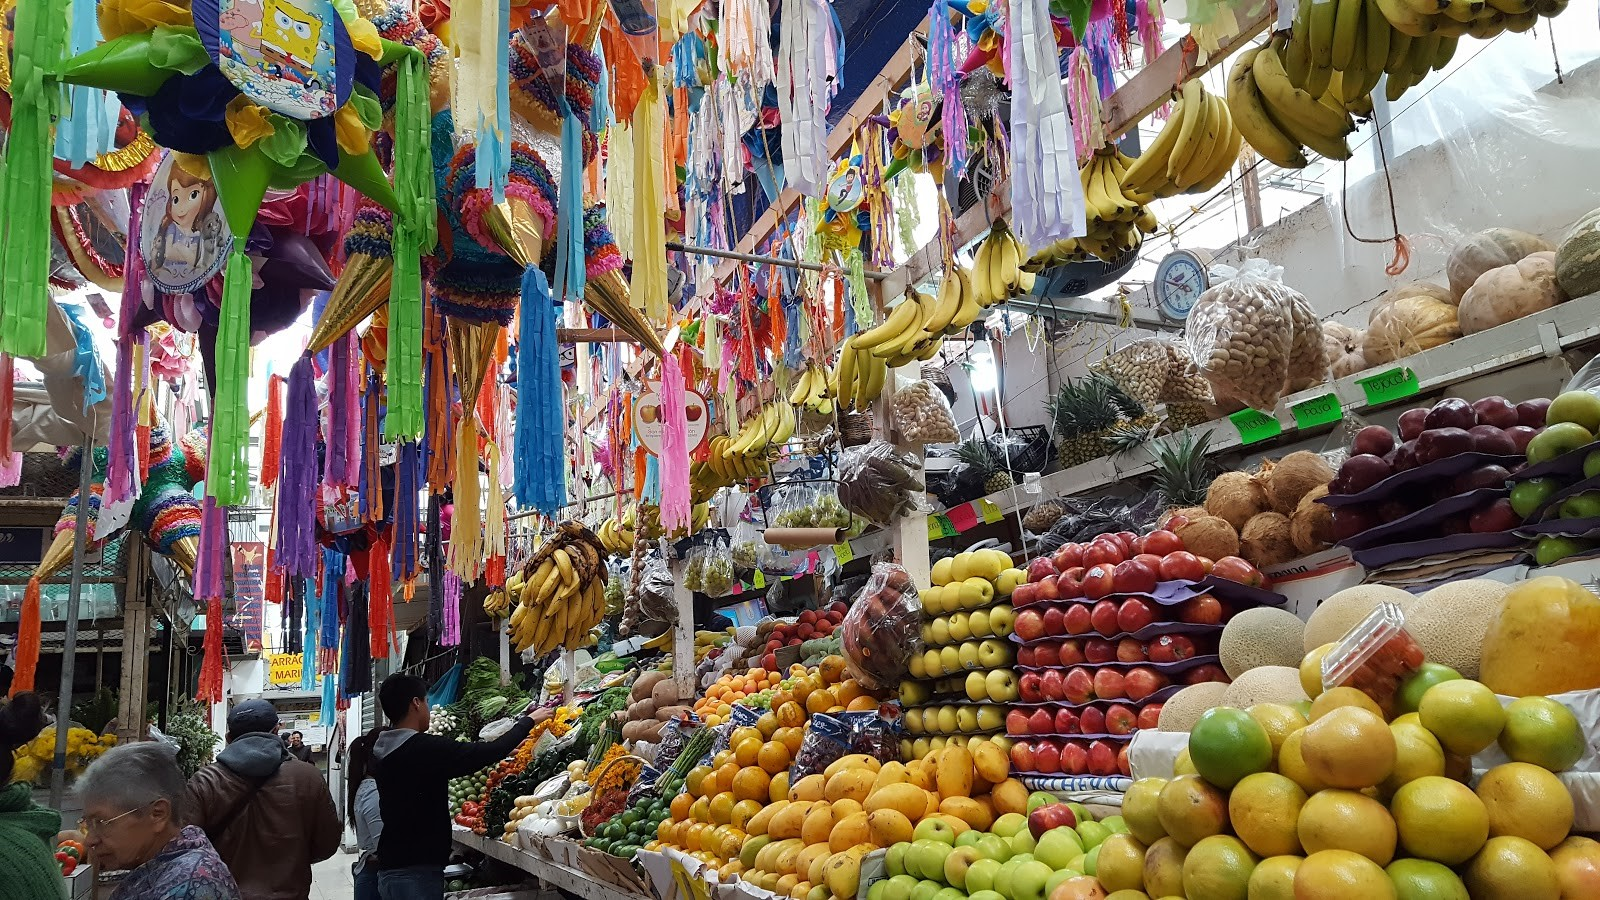 Photograph of market stall filled with bright fabrics and fruit and veg